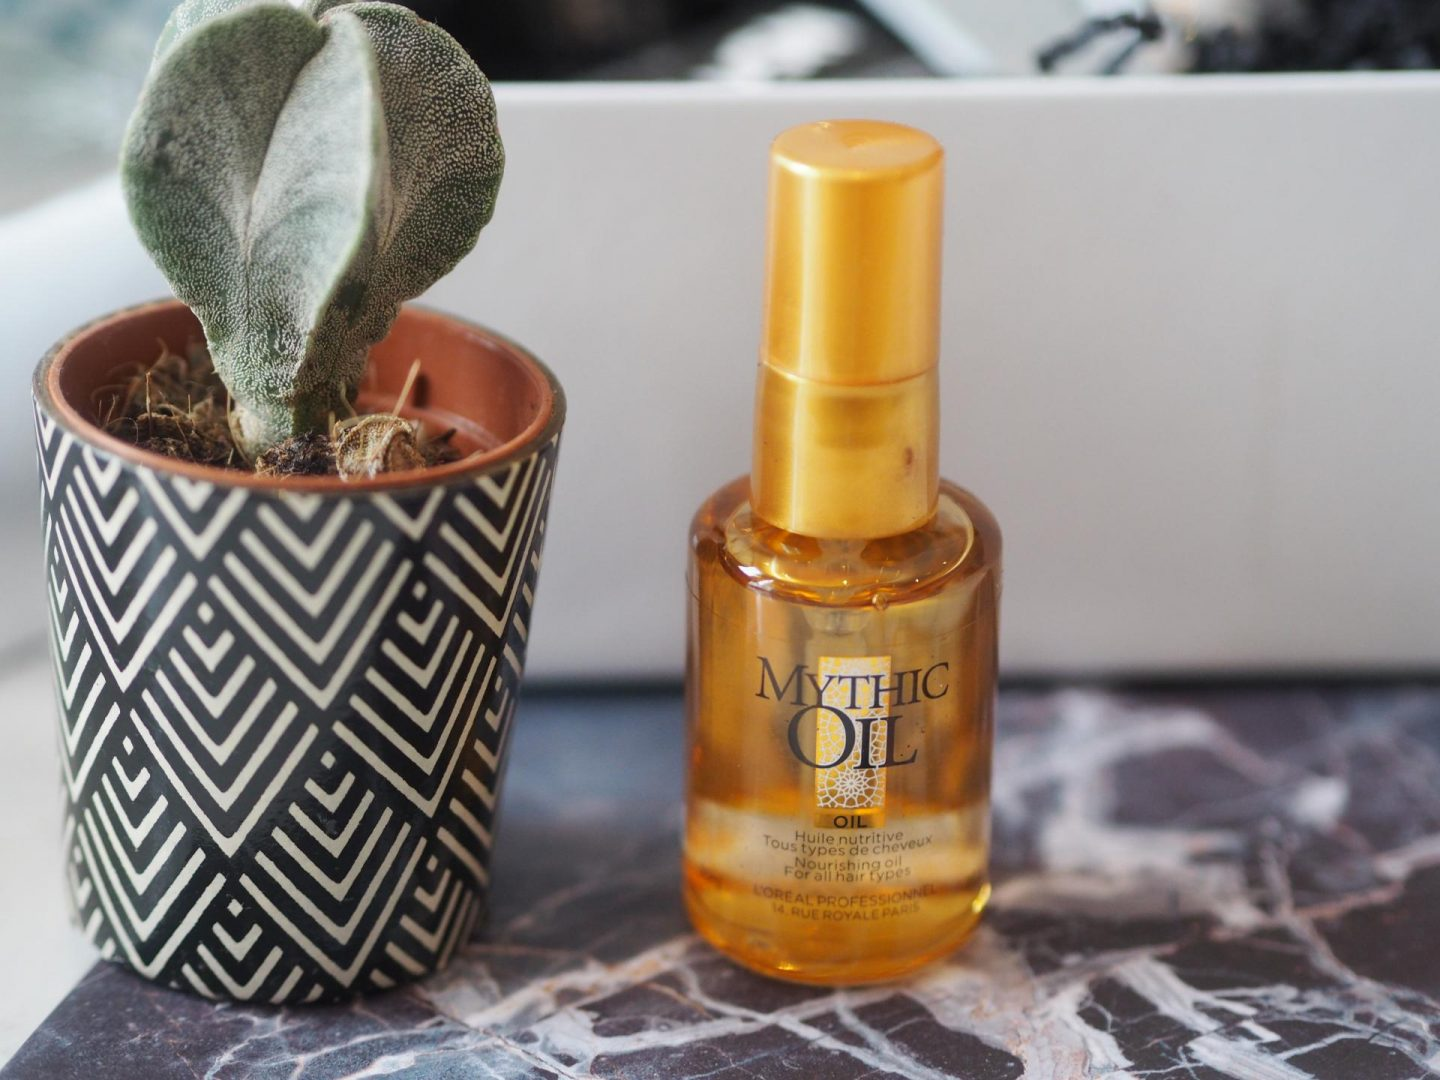 Lookfantastic #LFSparkle Box - Product: L'Oreal Professional Mythic Oil